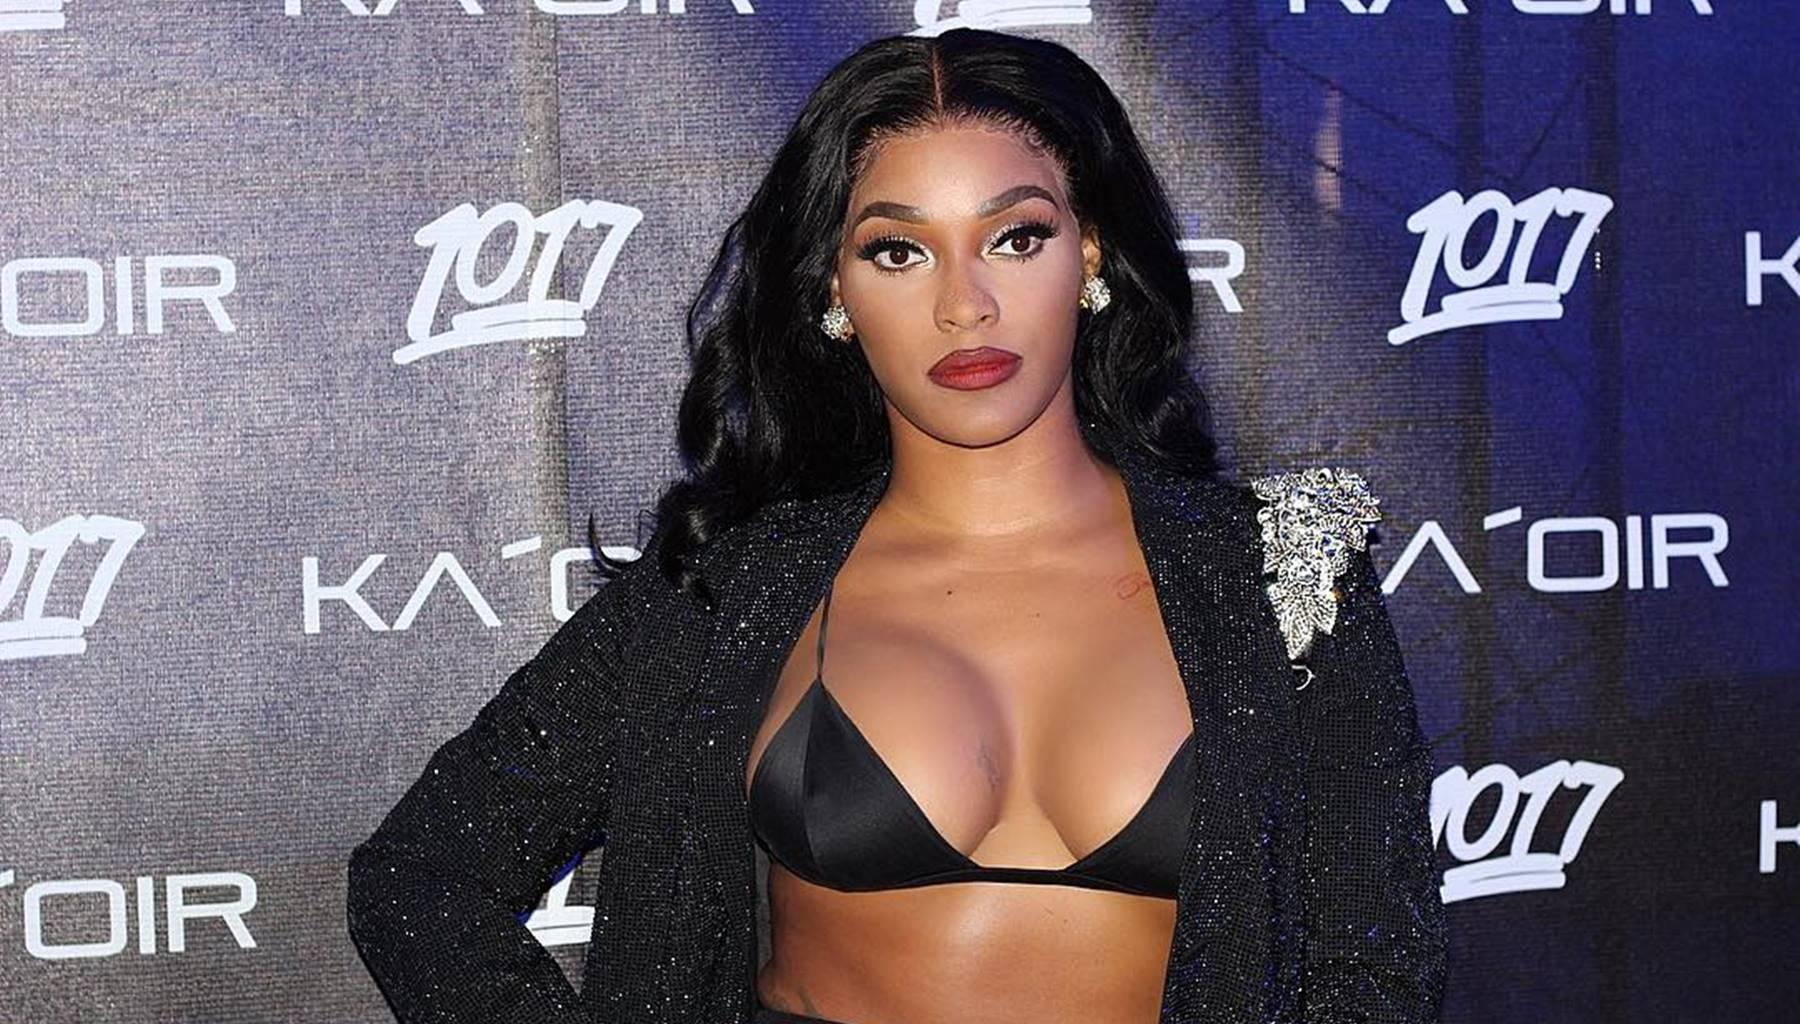 Joseline Hernandez Has A New Man And His Name Is DJ Stevie J -- Check Out The Photo That Has Some Fans Of The 'Love And Hip Hop: Atlanta' Star And Her Baby Daddy Angry